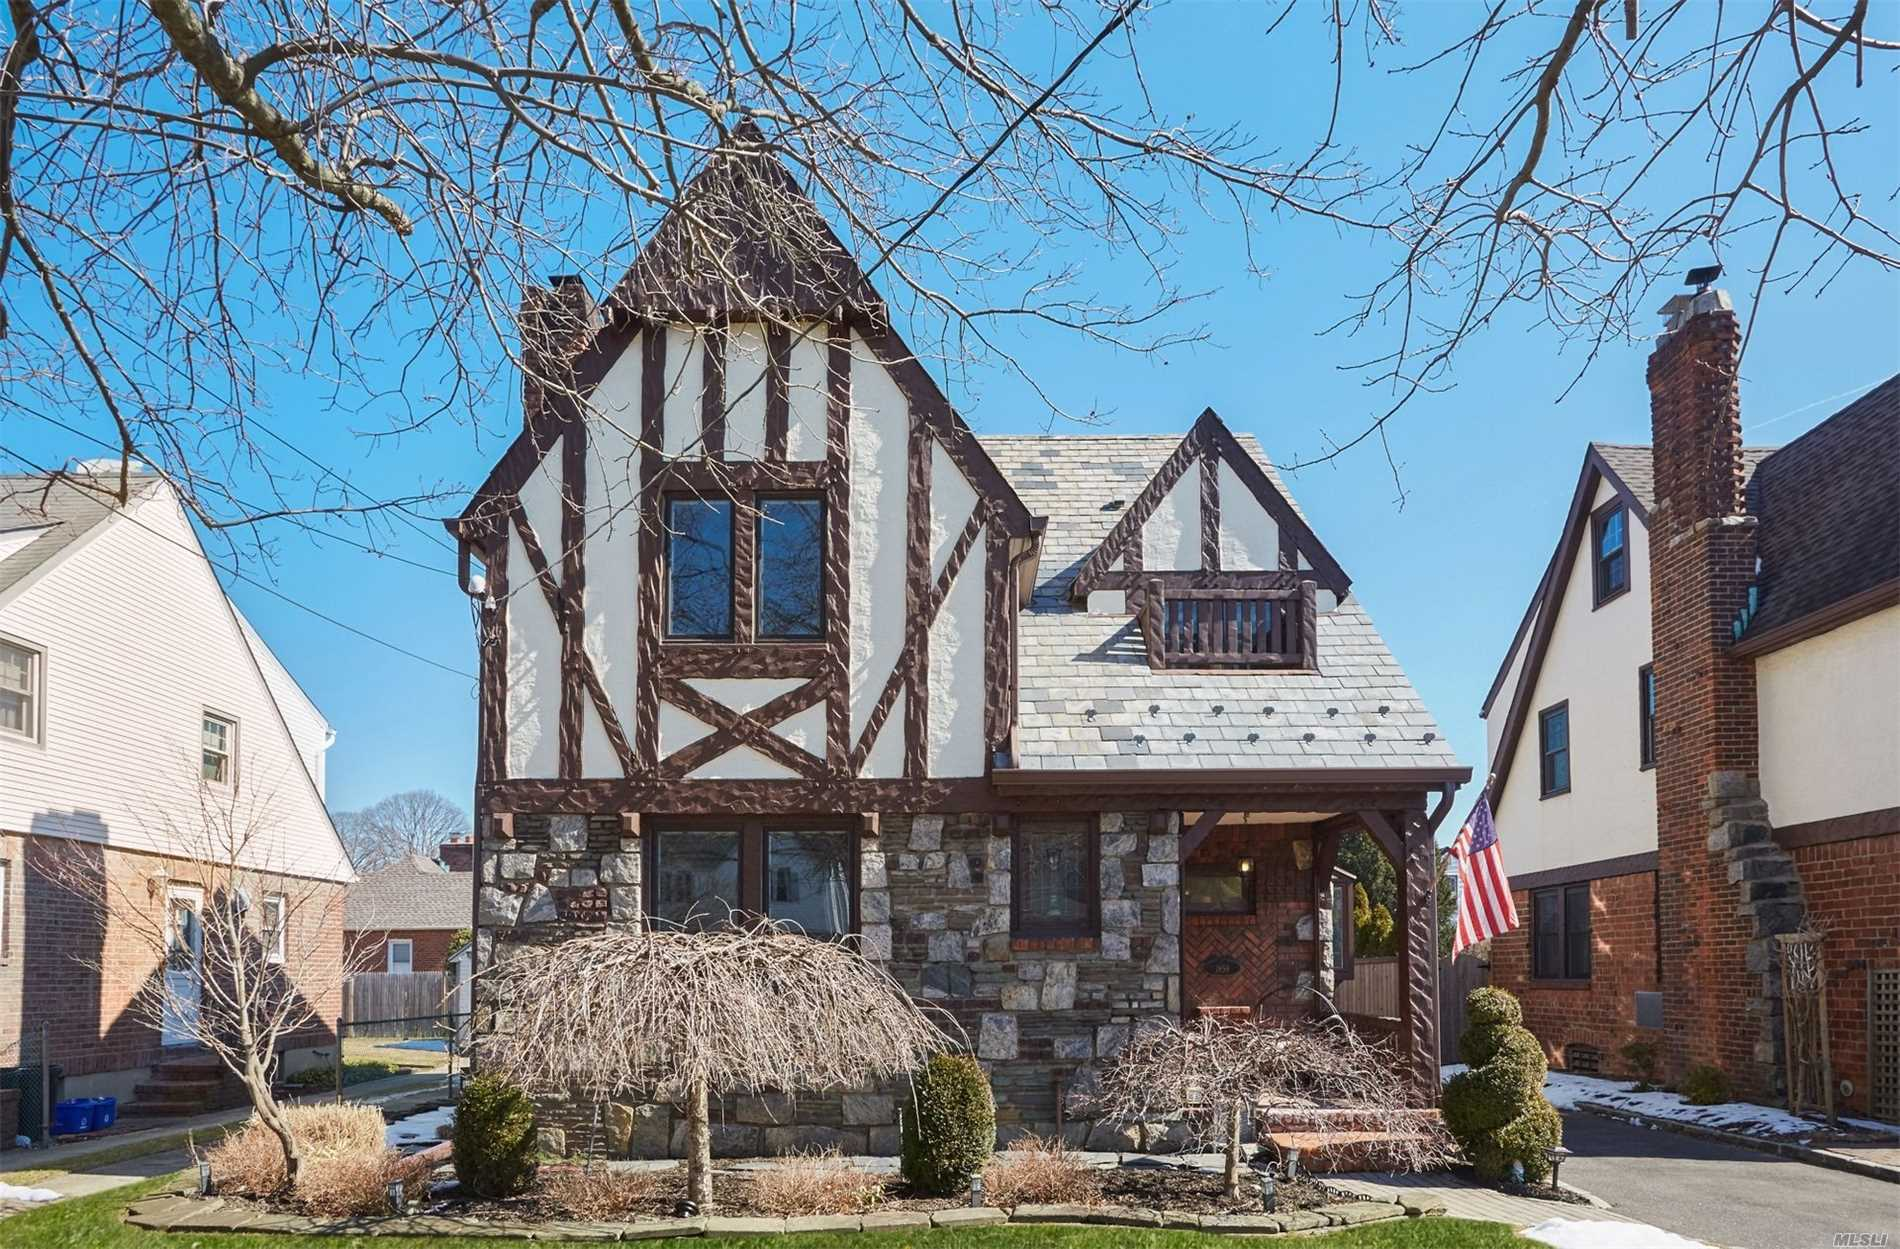 This Tudor Colonial Has Been Fully Reno'd. 1st Fl Boasts High Wood Beam Ceilings & Wood Burning Fireplace. Formal Dr Opens Into Fully Reno'd Eat-In Kitchen. Marble Counter Center Island W Drawer Microwave And Beverage Ctr Built In. Marble Tile Bath Off Kitchen, 2nd Floor Has Marble Full Bath & 3 Large Beds, Huge Finished Walk Up Attic, Office Wic, Ig Pool New Paver Yard